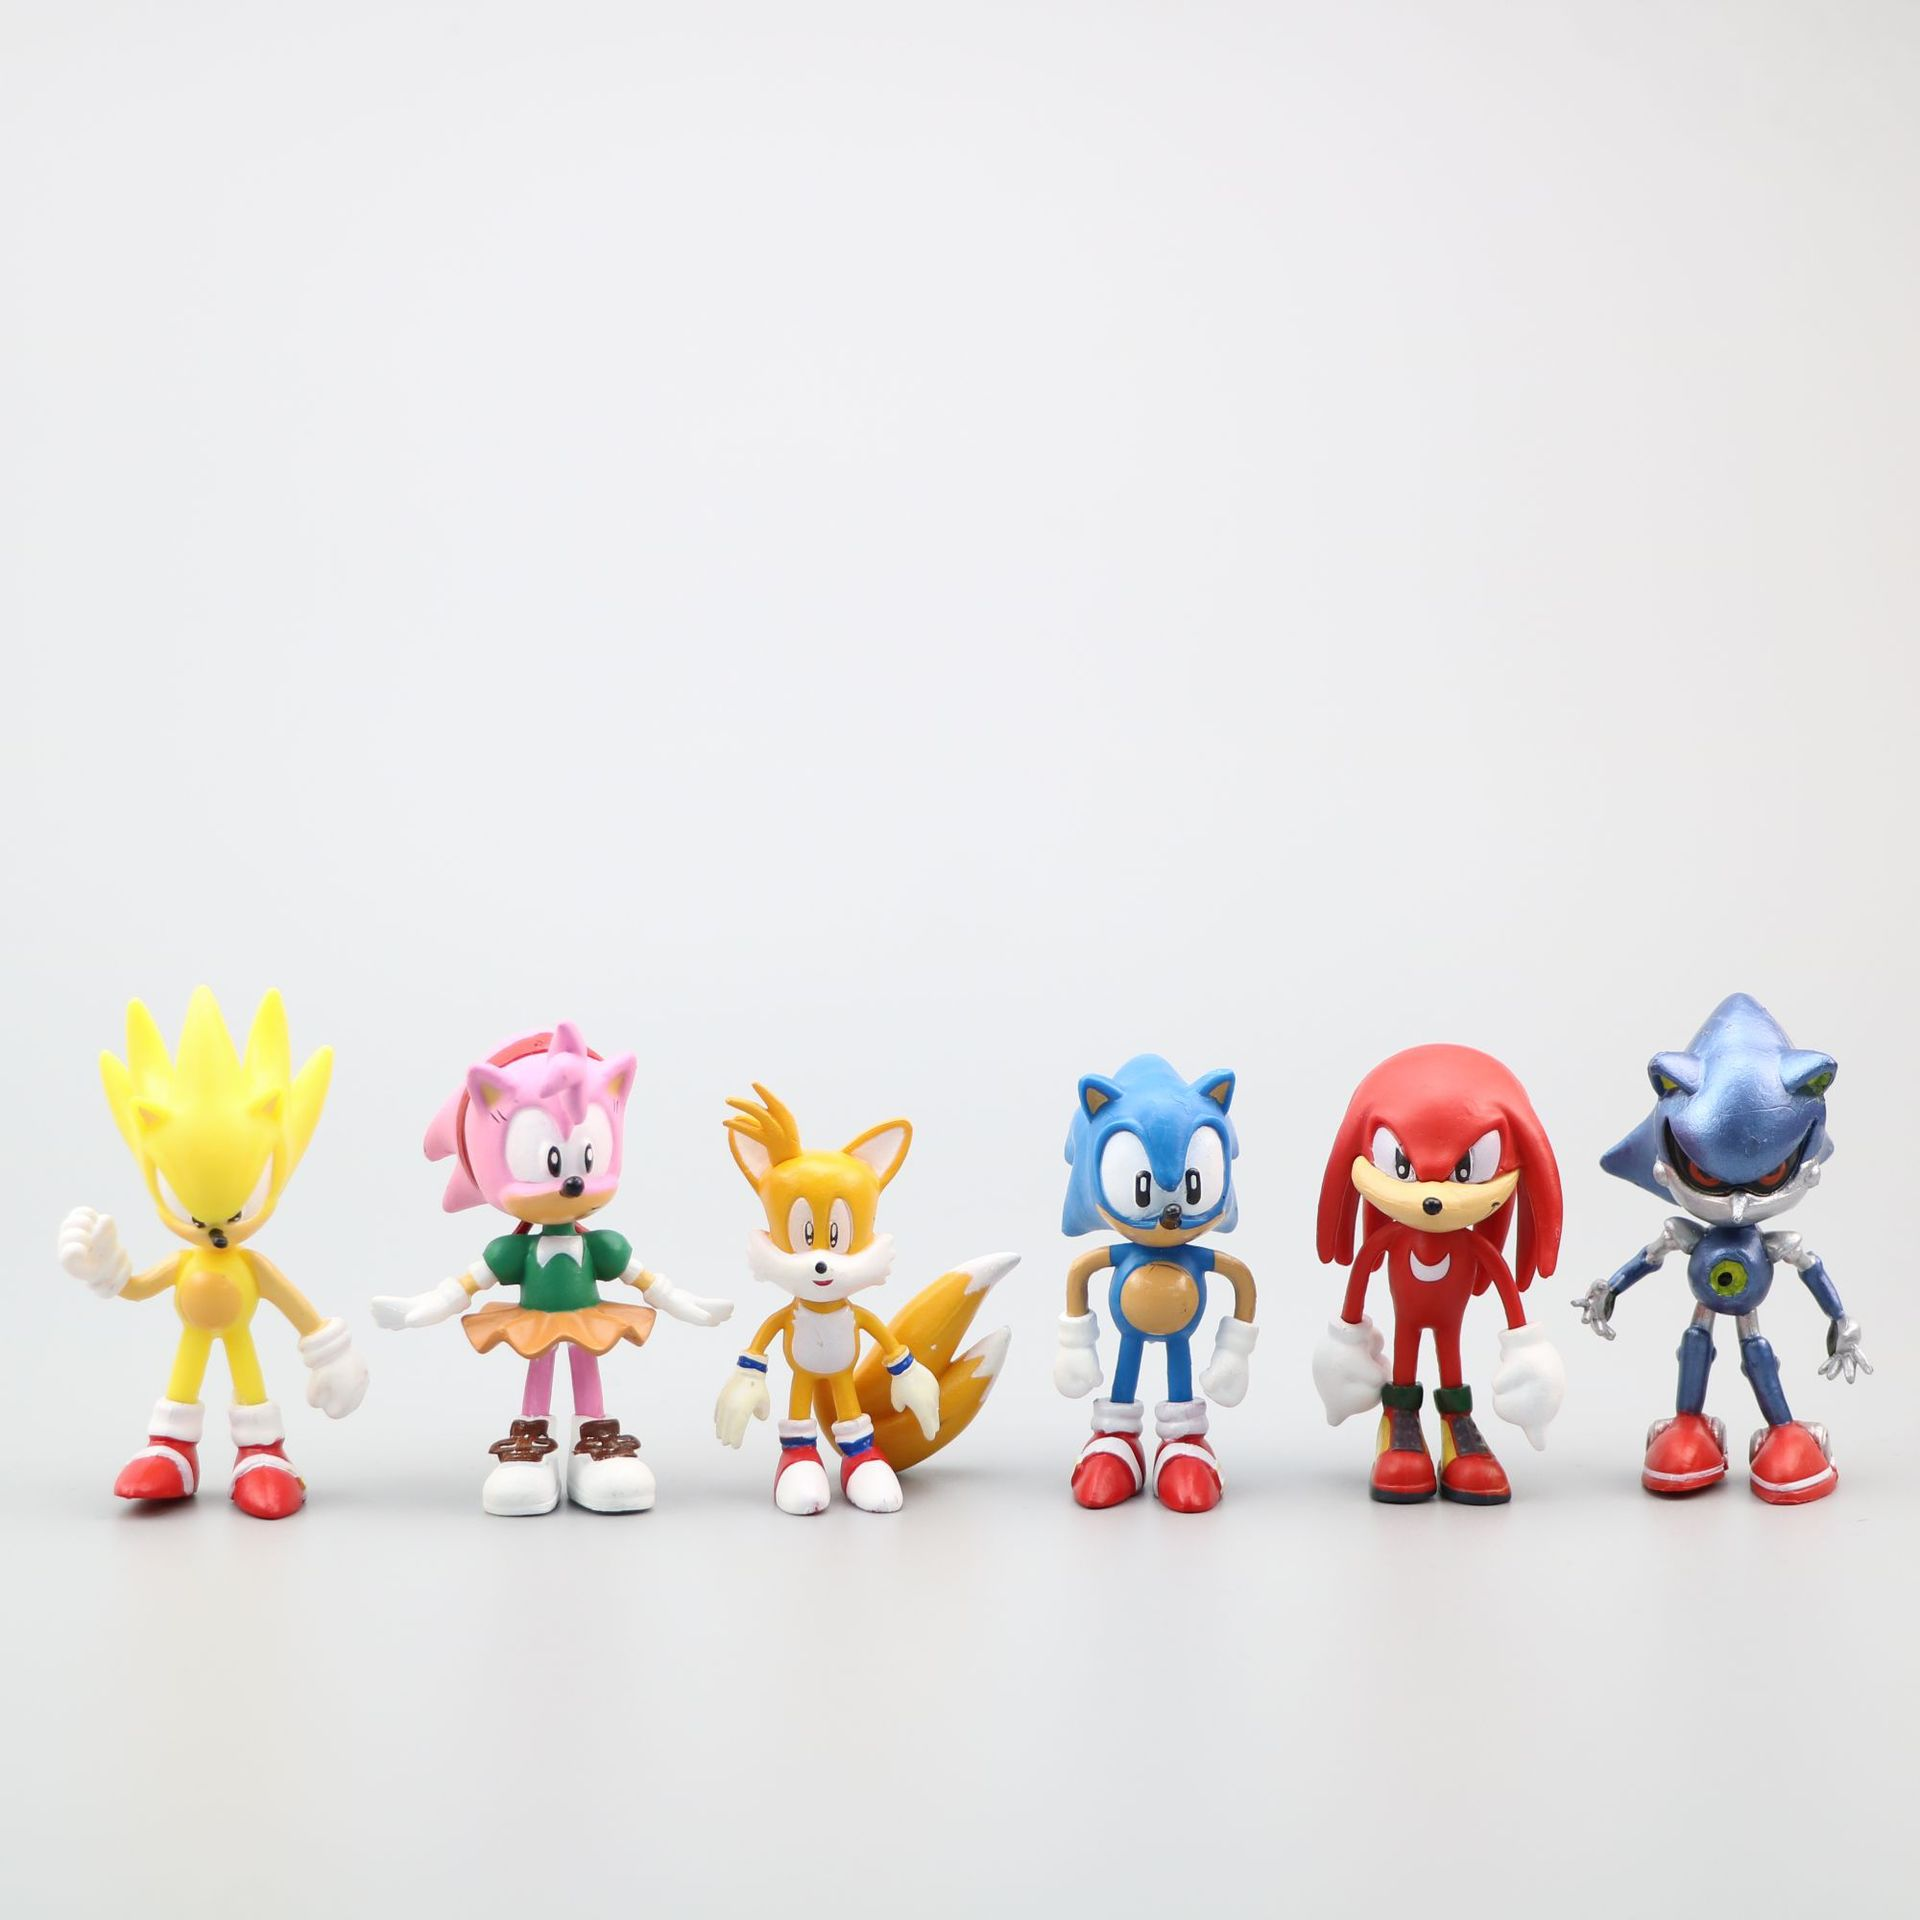 Sonic The Hedgehog Pvc Action Figure Miles Knuckles Amy Rose 60mm Anime Game Movie Sonic The Hedgehog Figurine Toys 6pcs Set Action Toy Figures Aliexpress